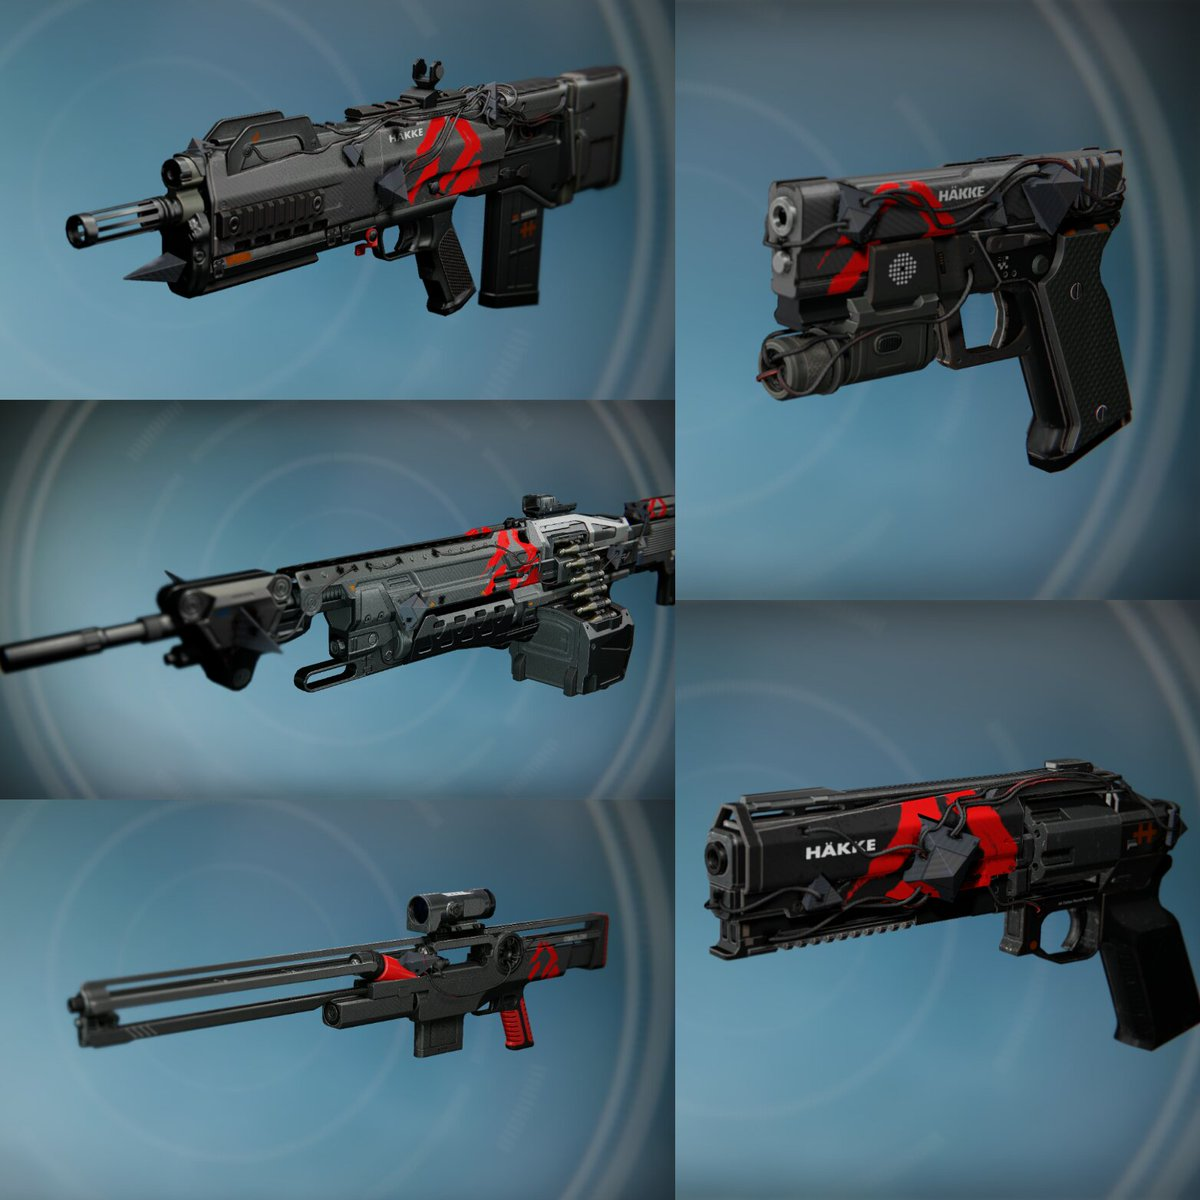 Destiny The Game On Twitter Emerge From Wrath Of The Machine